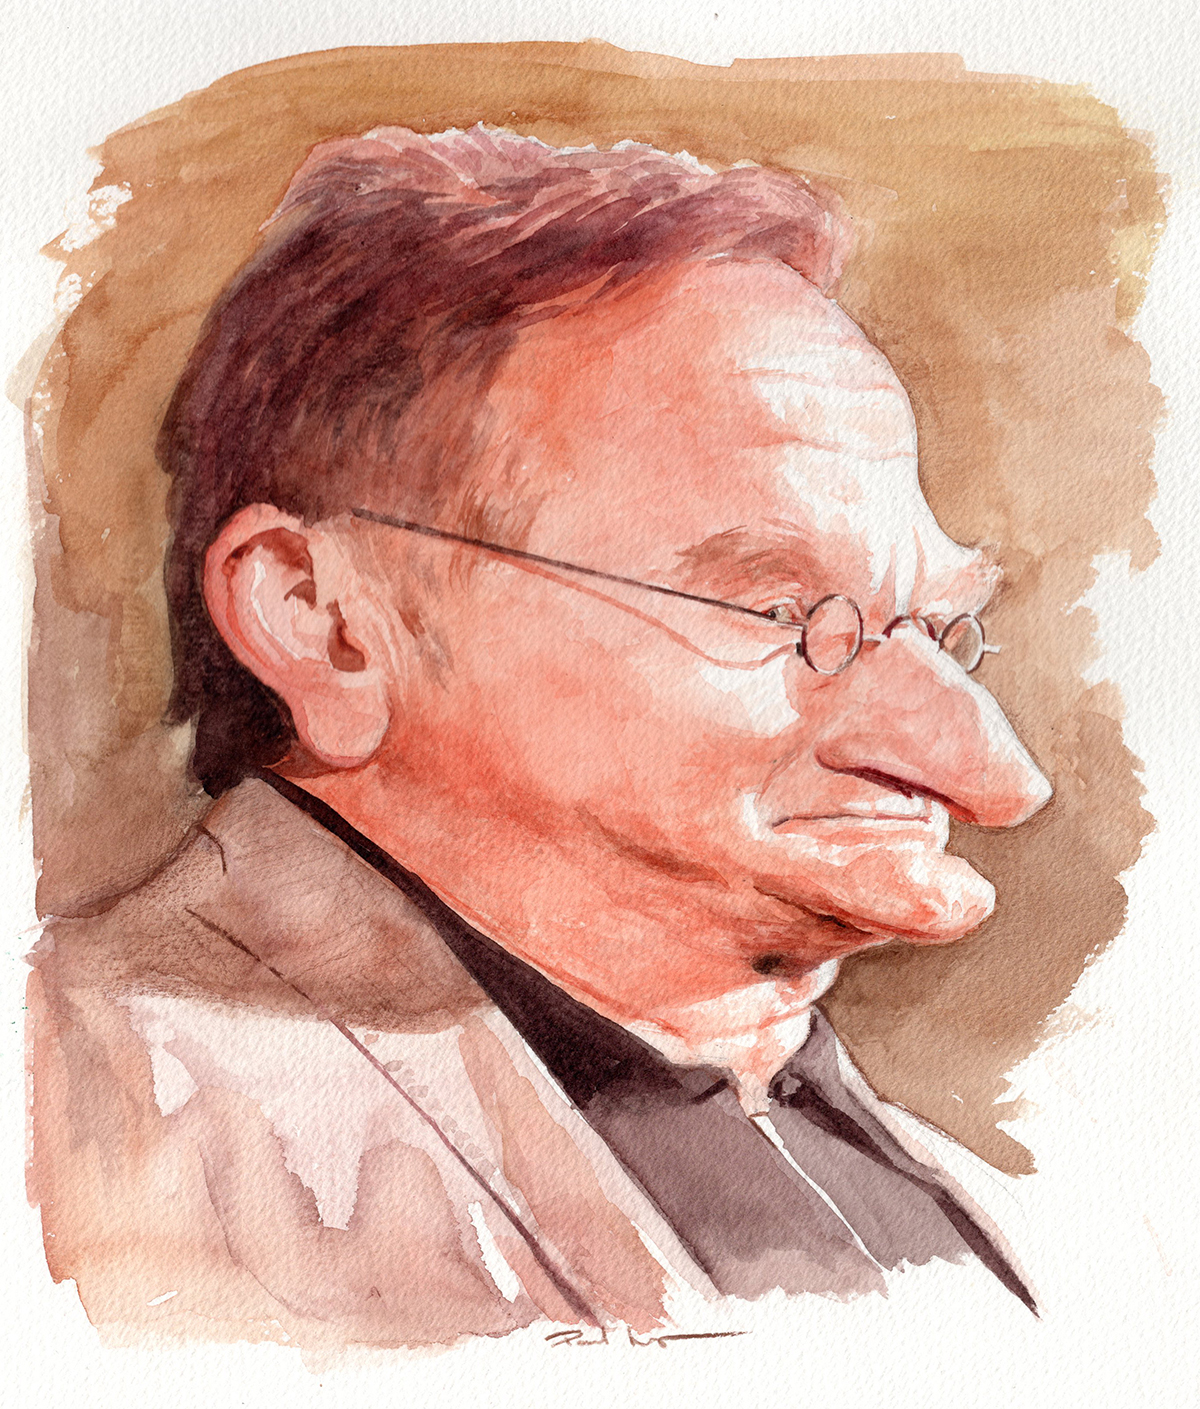 Robin Williams - Watercolour on PaperImage size 220x260mm£250